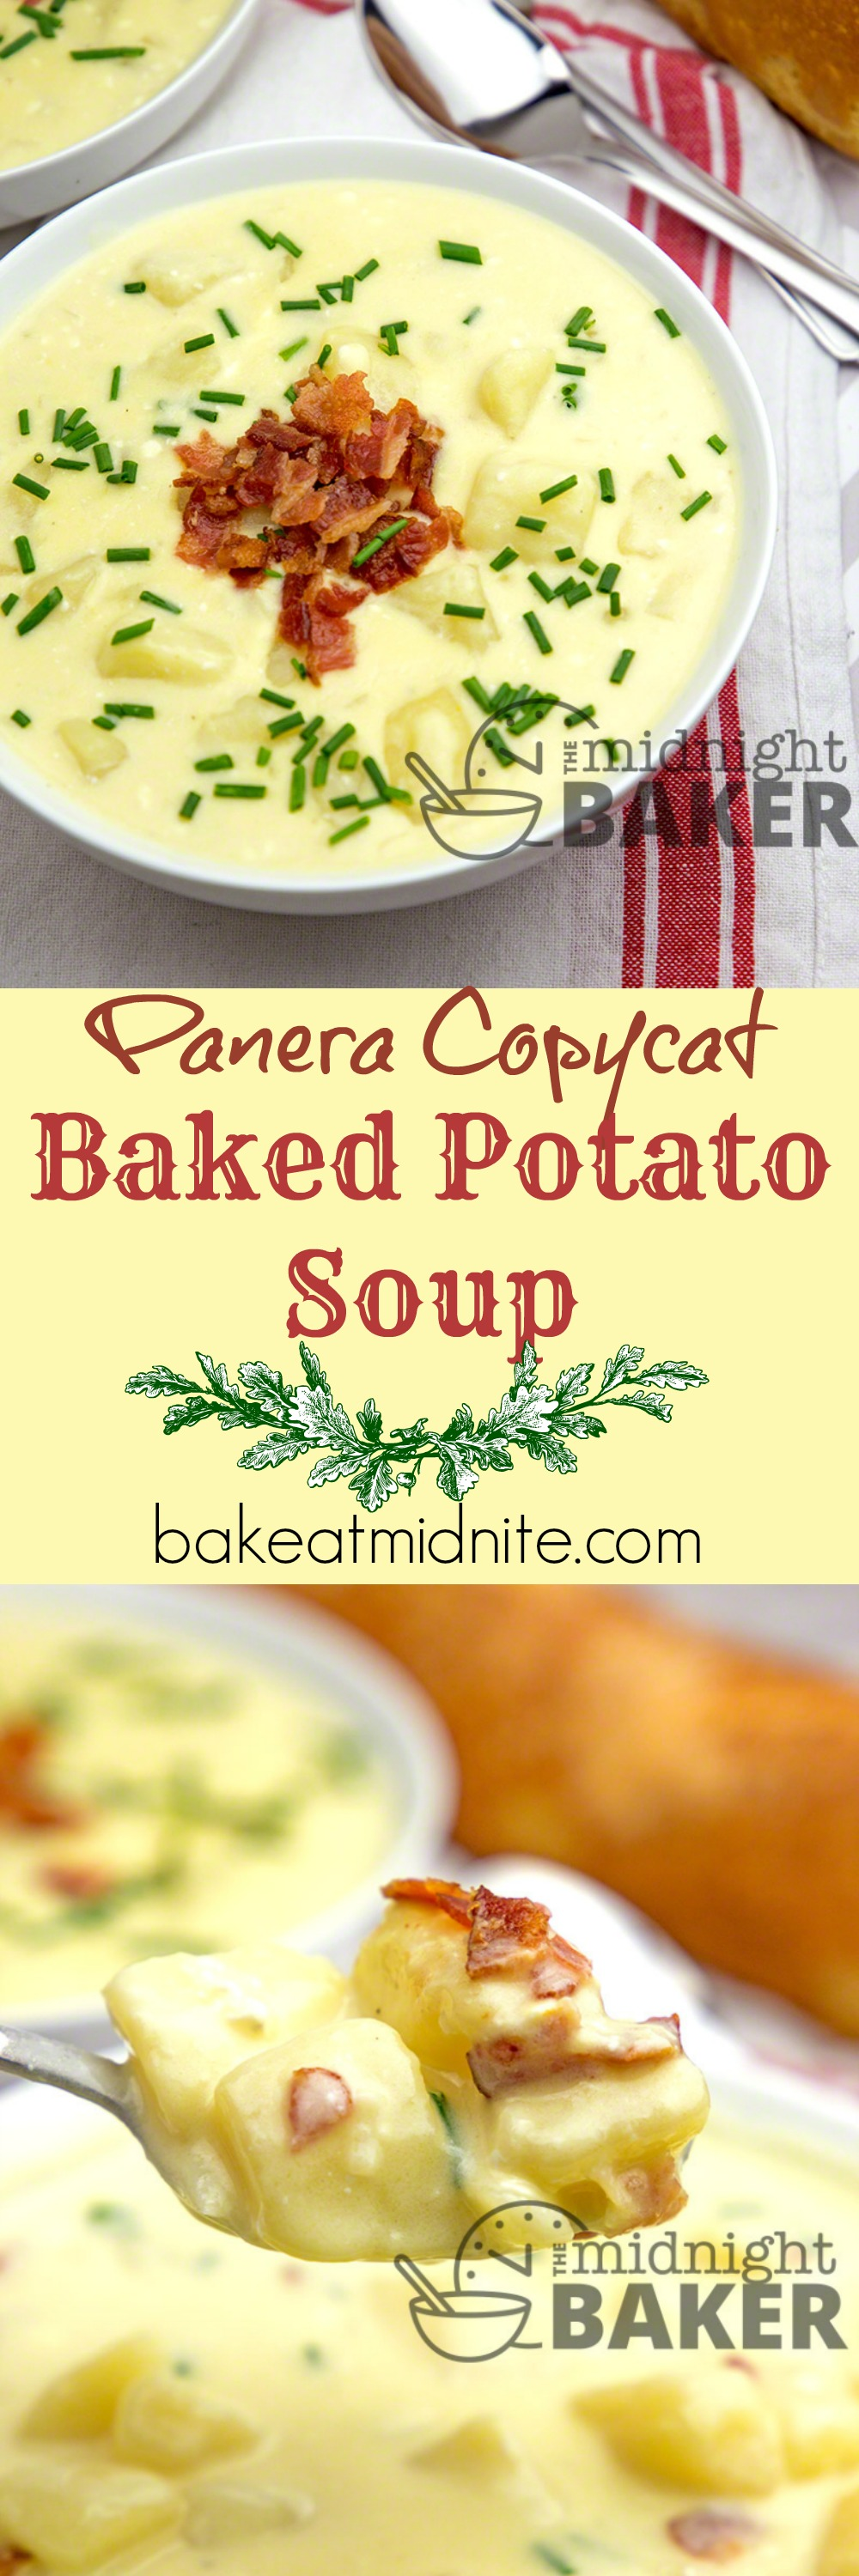 If you love Panera's baked potato soup, you'll love this copycat recipe!